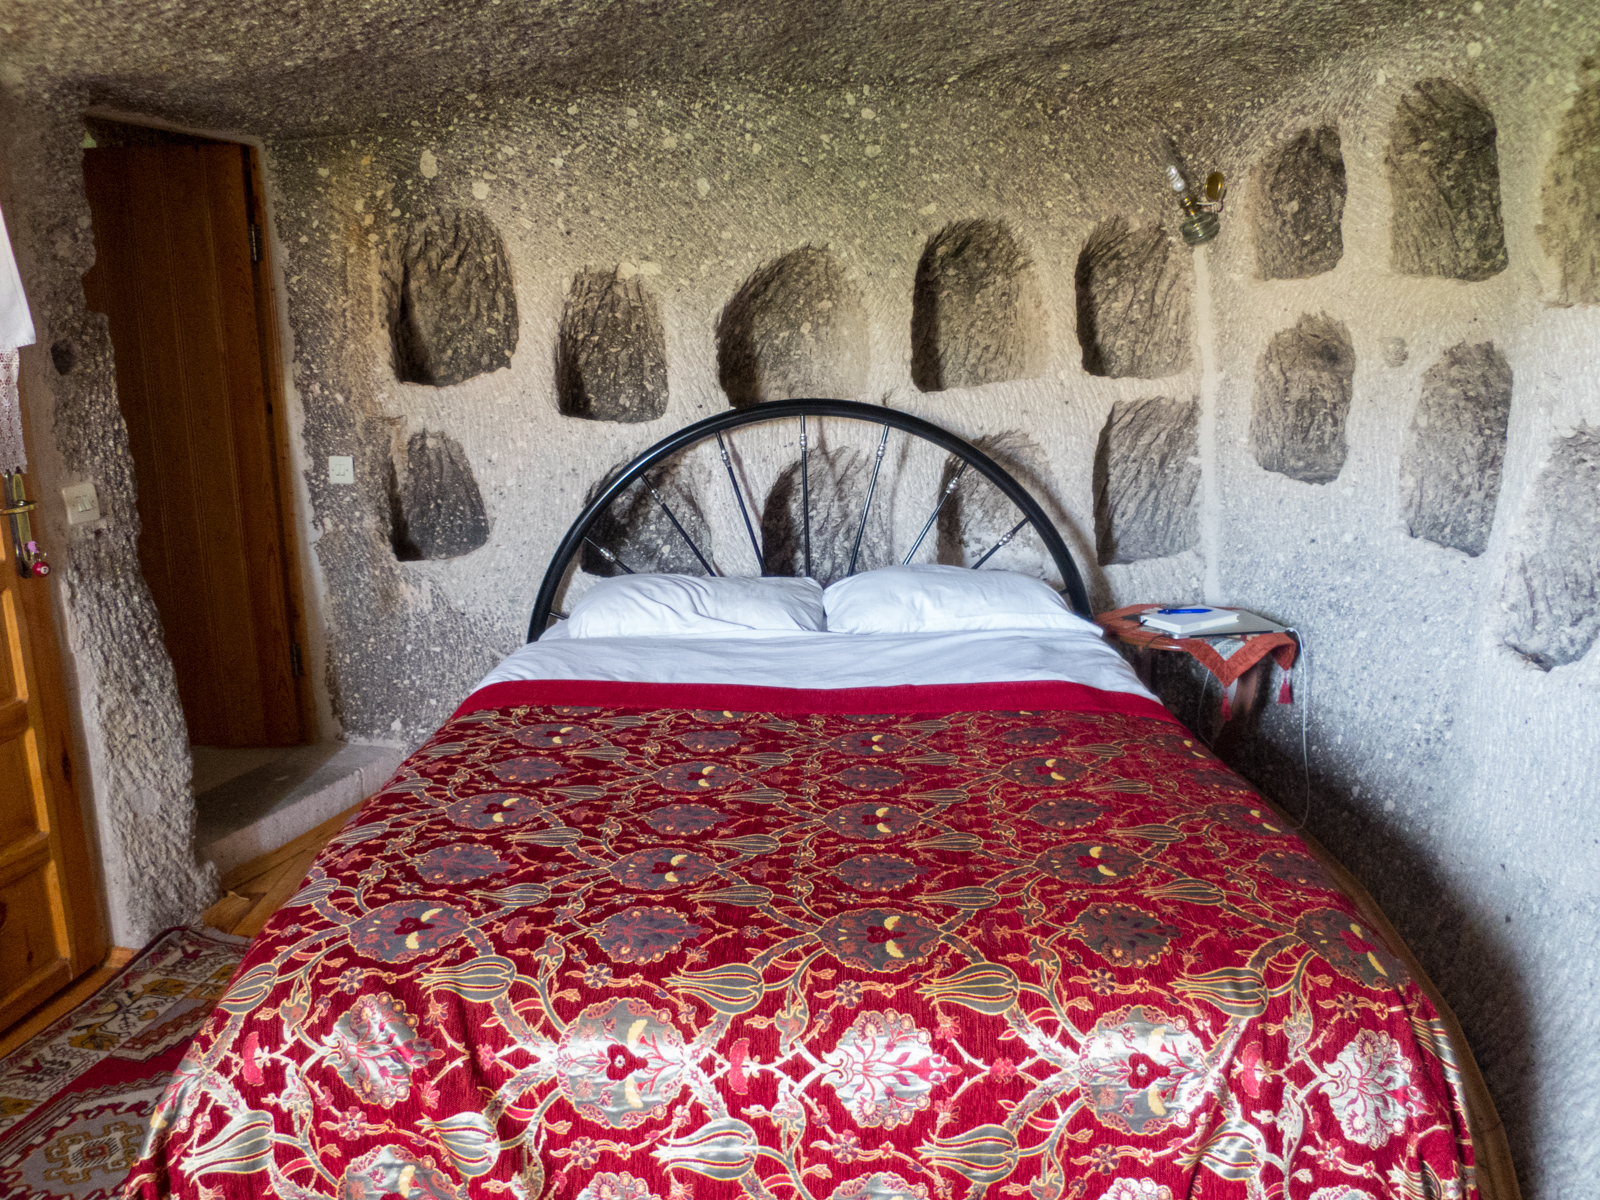 My cave hotel room